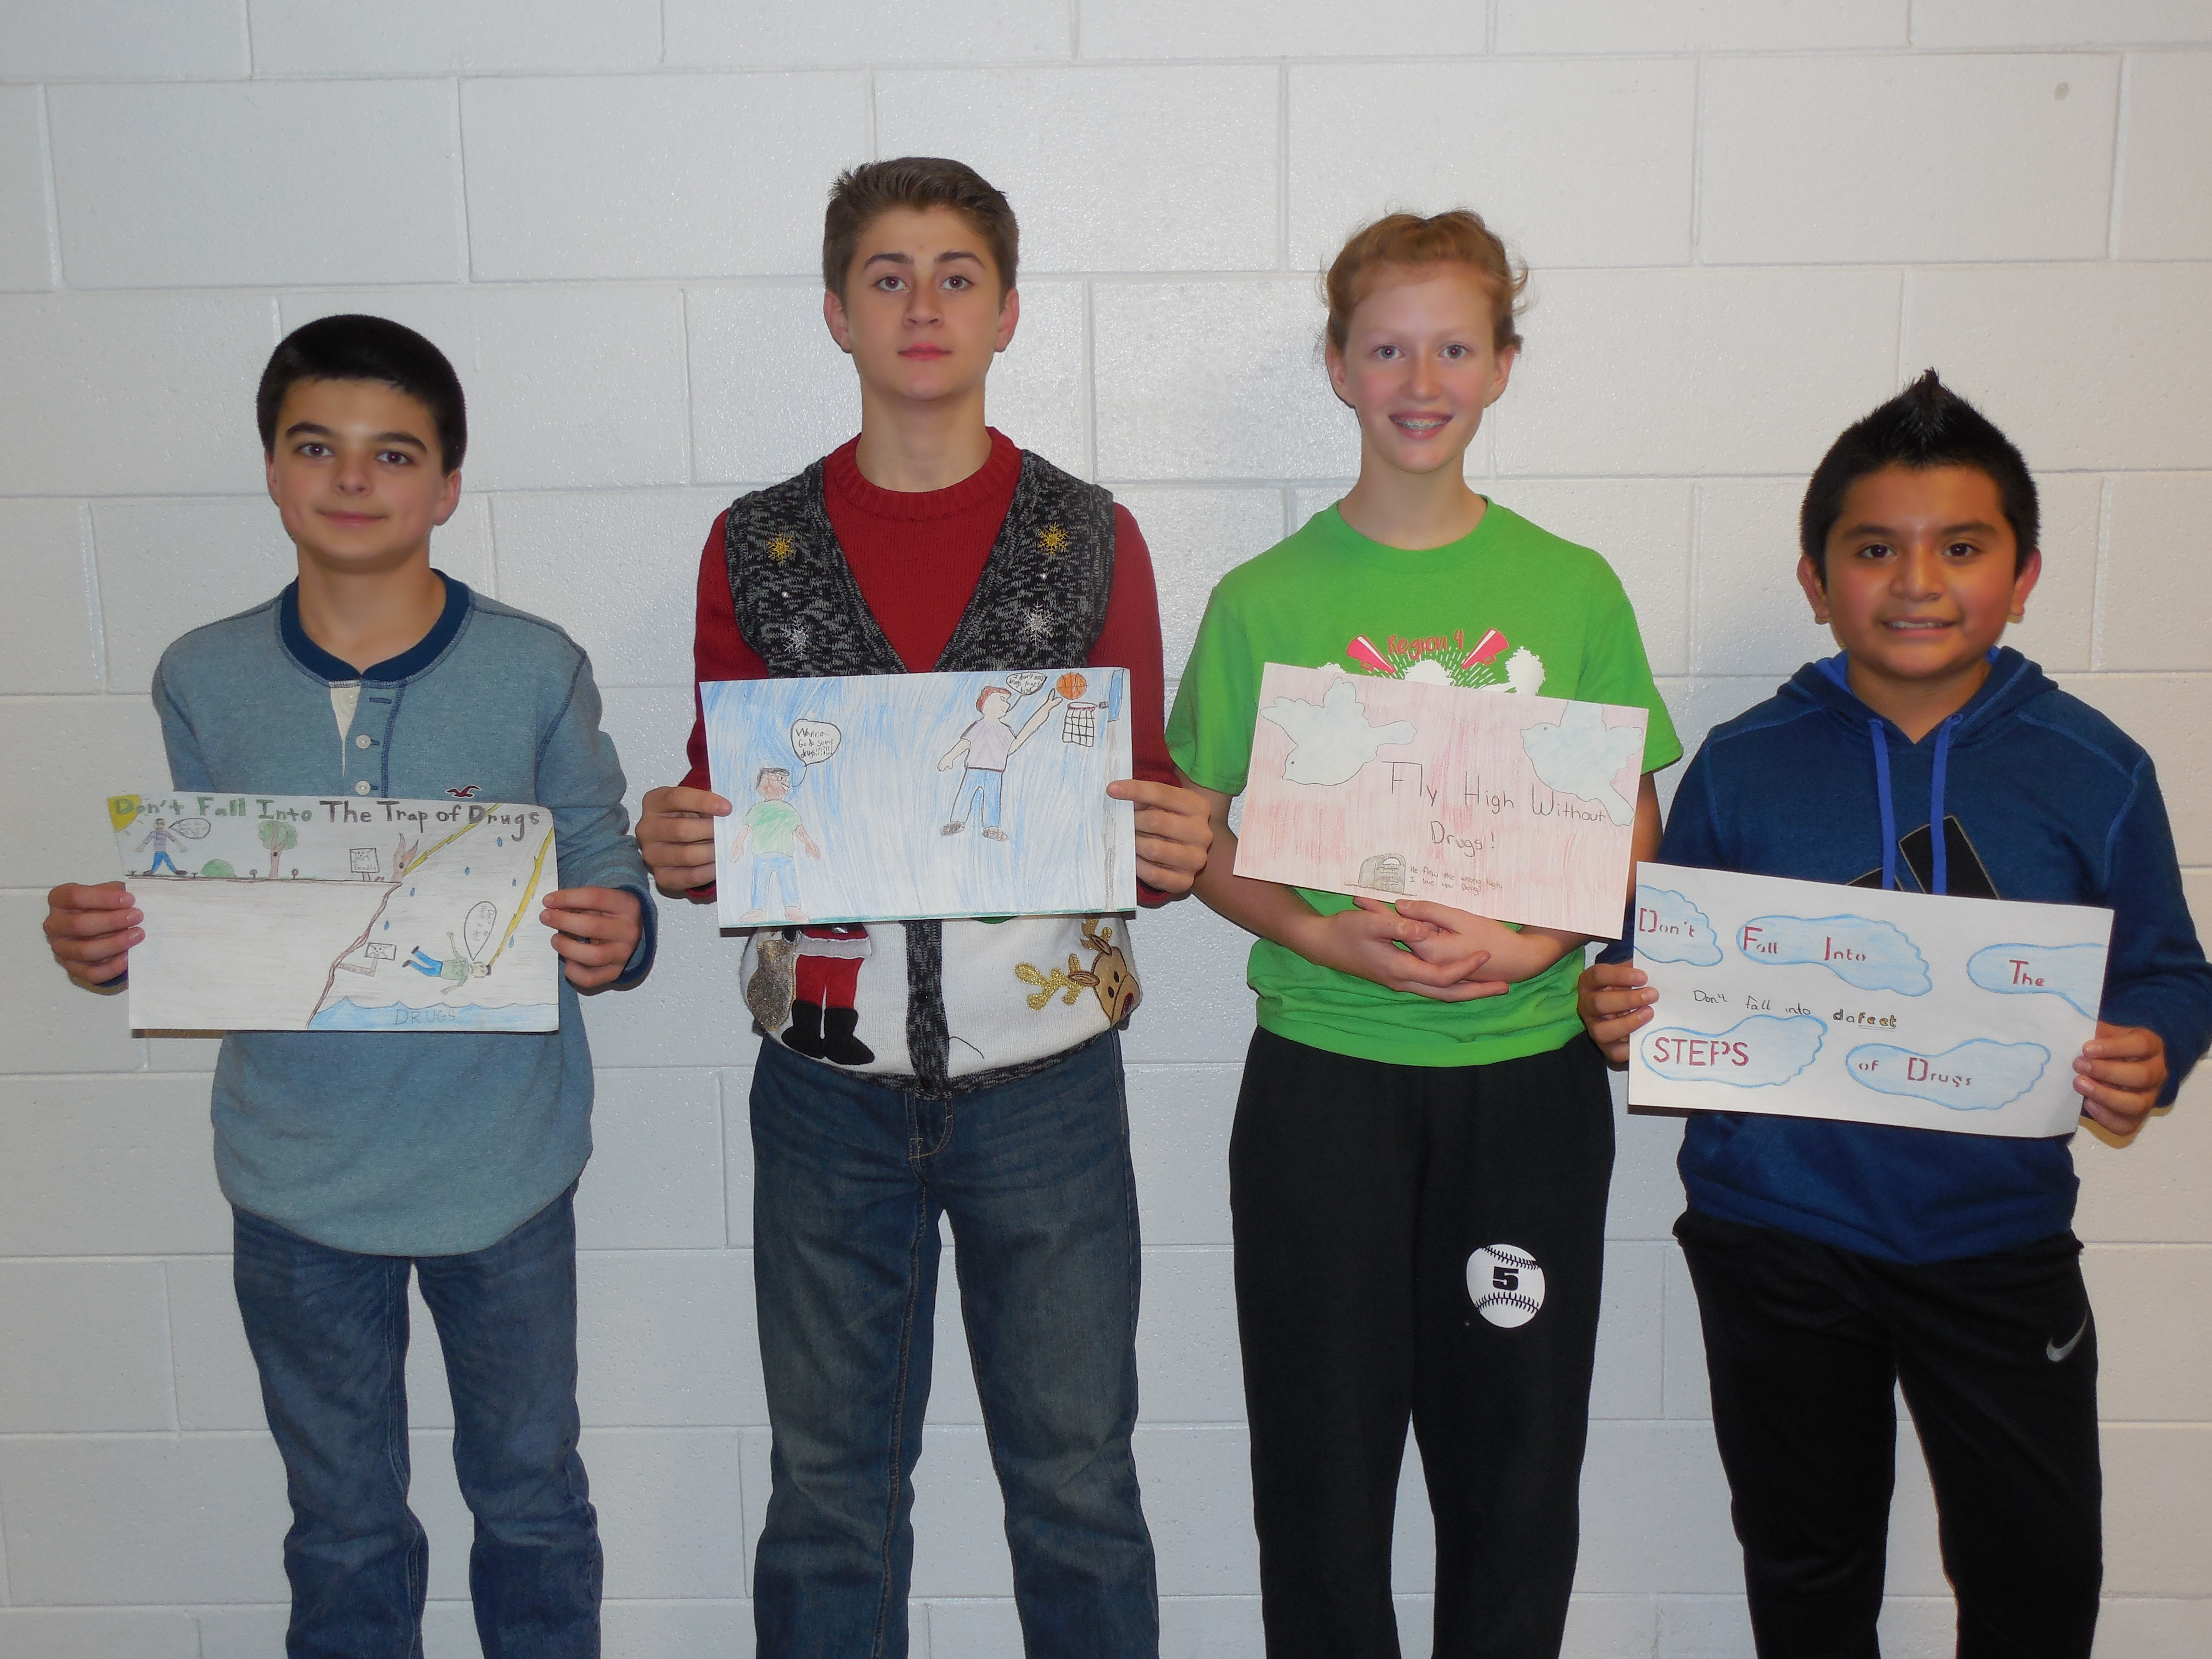 7th grade poster contest winners:  Ben Tallent (1st place), Christian Derryberry (2nd place), Delaney Chilton (tie—3rd place), and Jimmy Mazariegos (tie—3rd place).